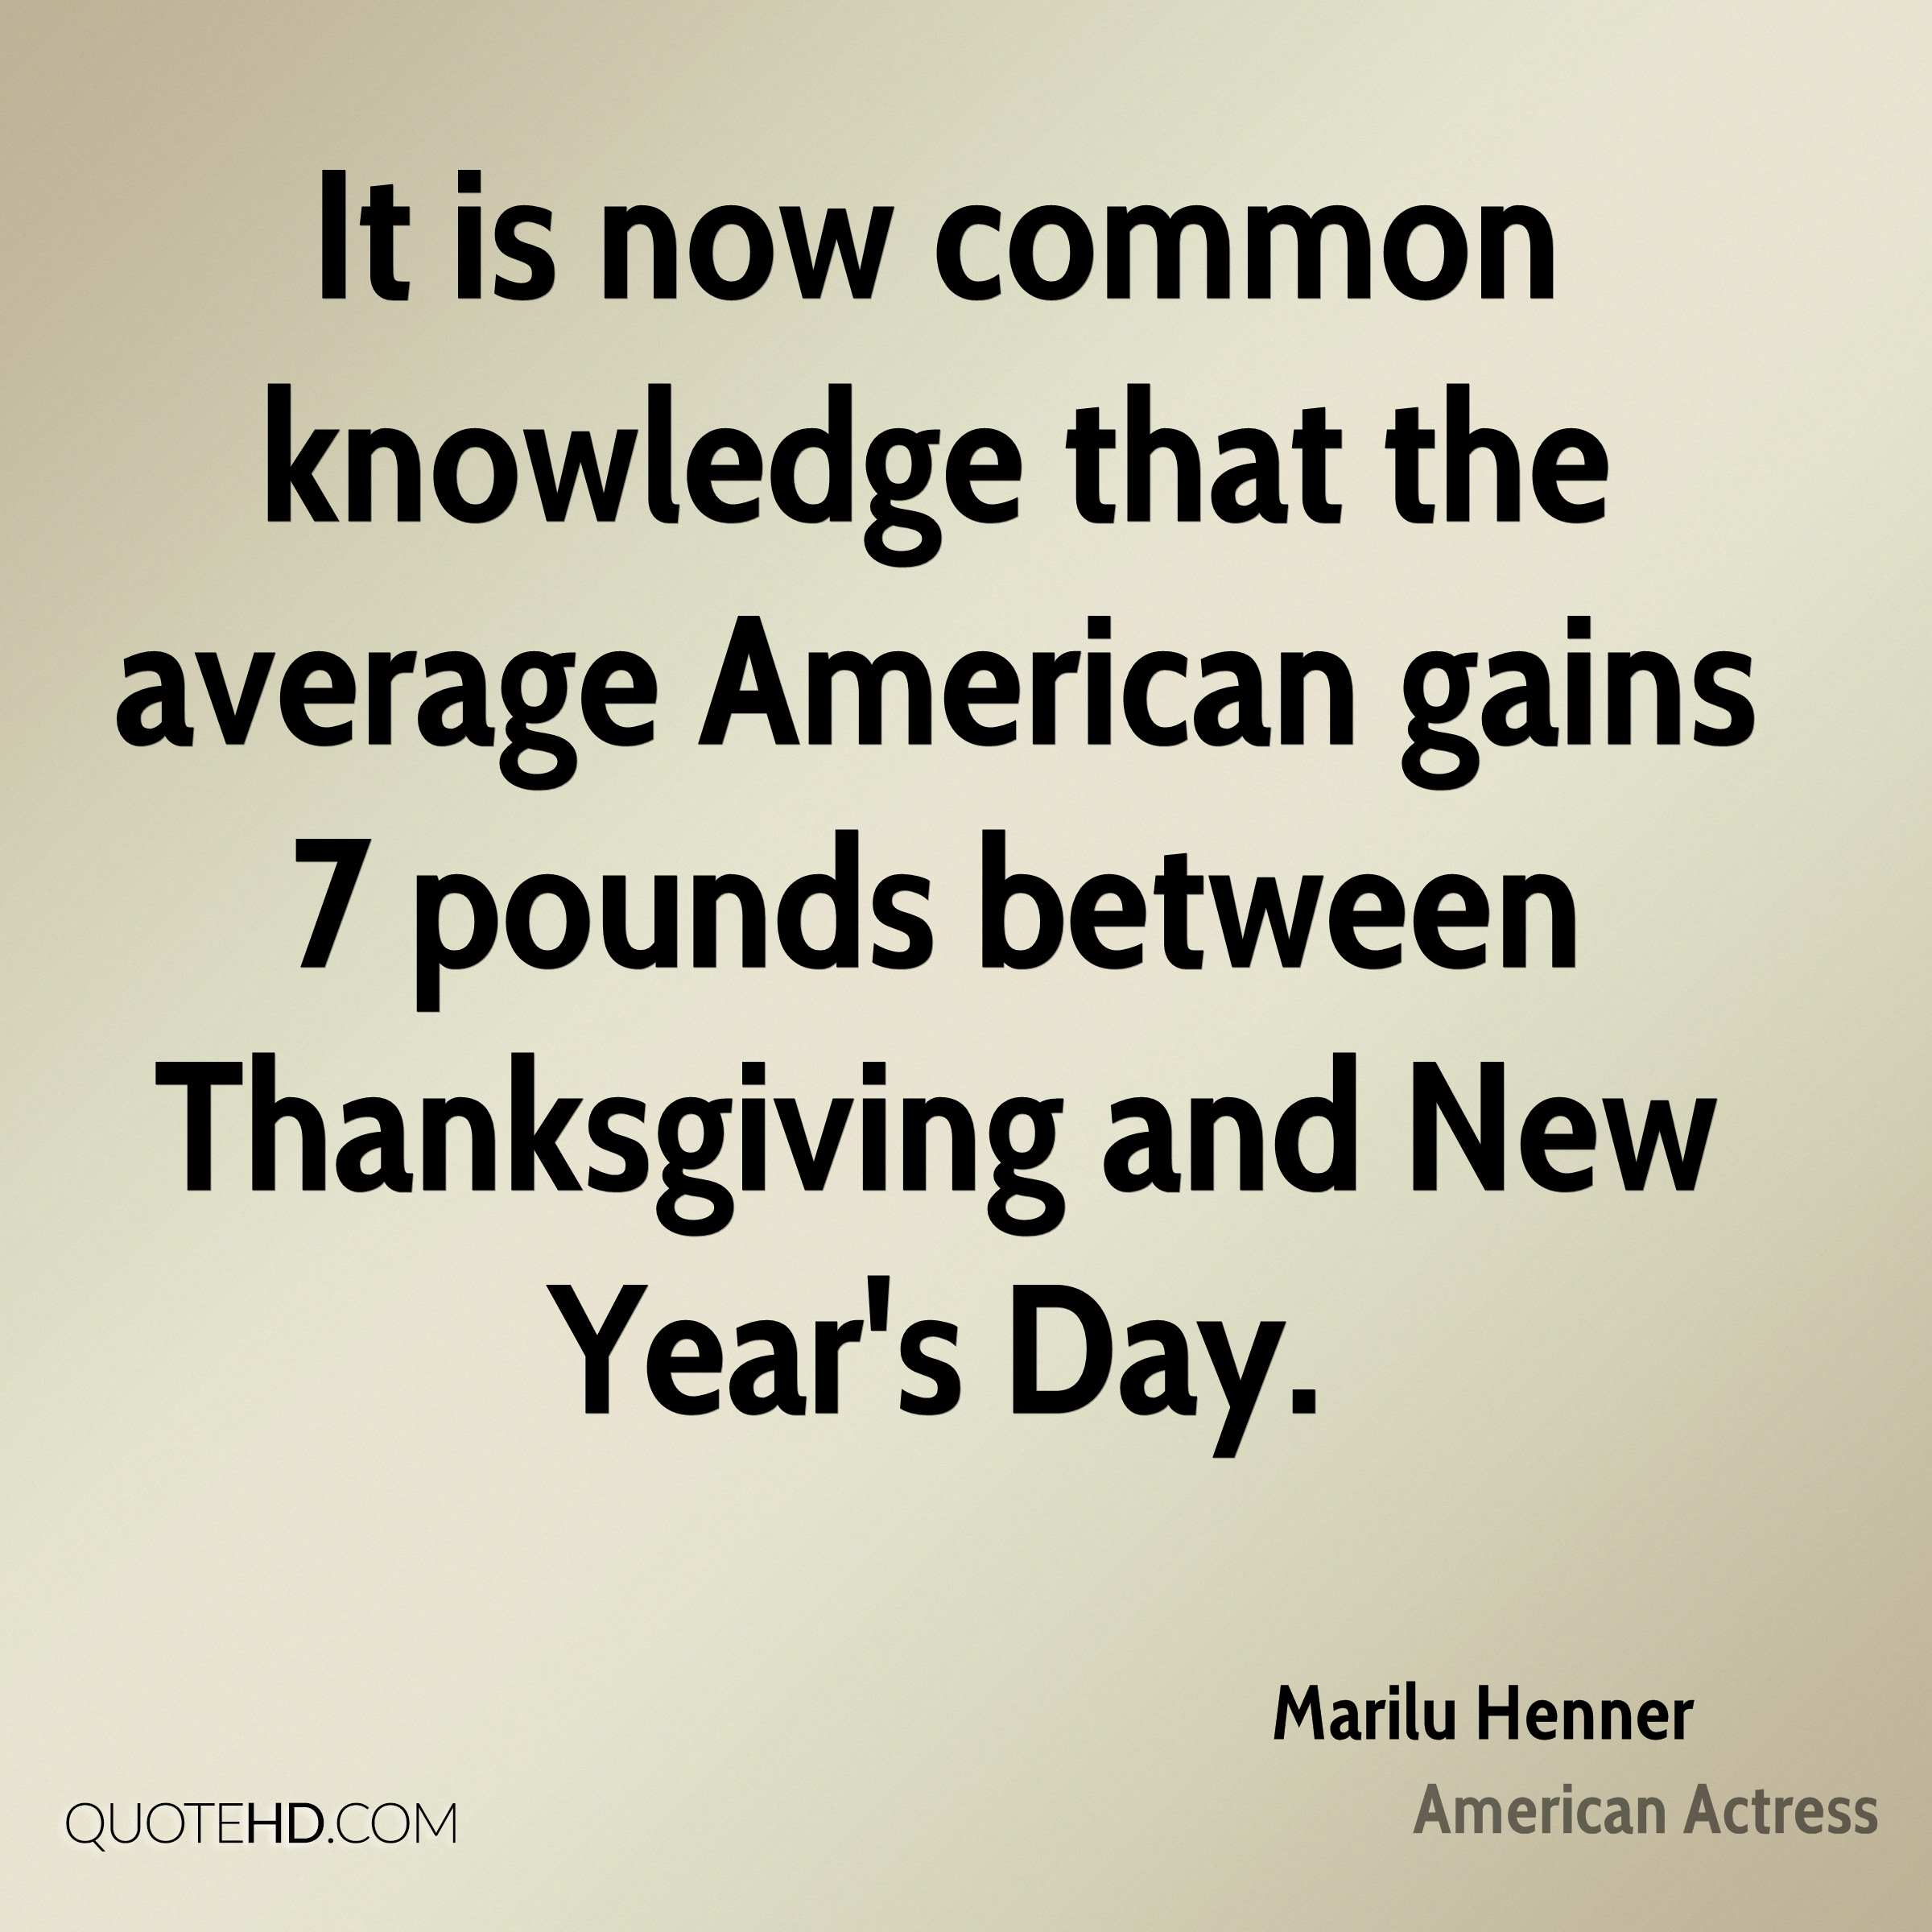 It is now common knowledge that the average American gains 7 pounds between Thanksgiving and New Year's Day.